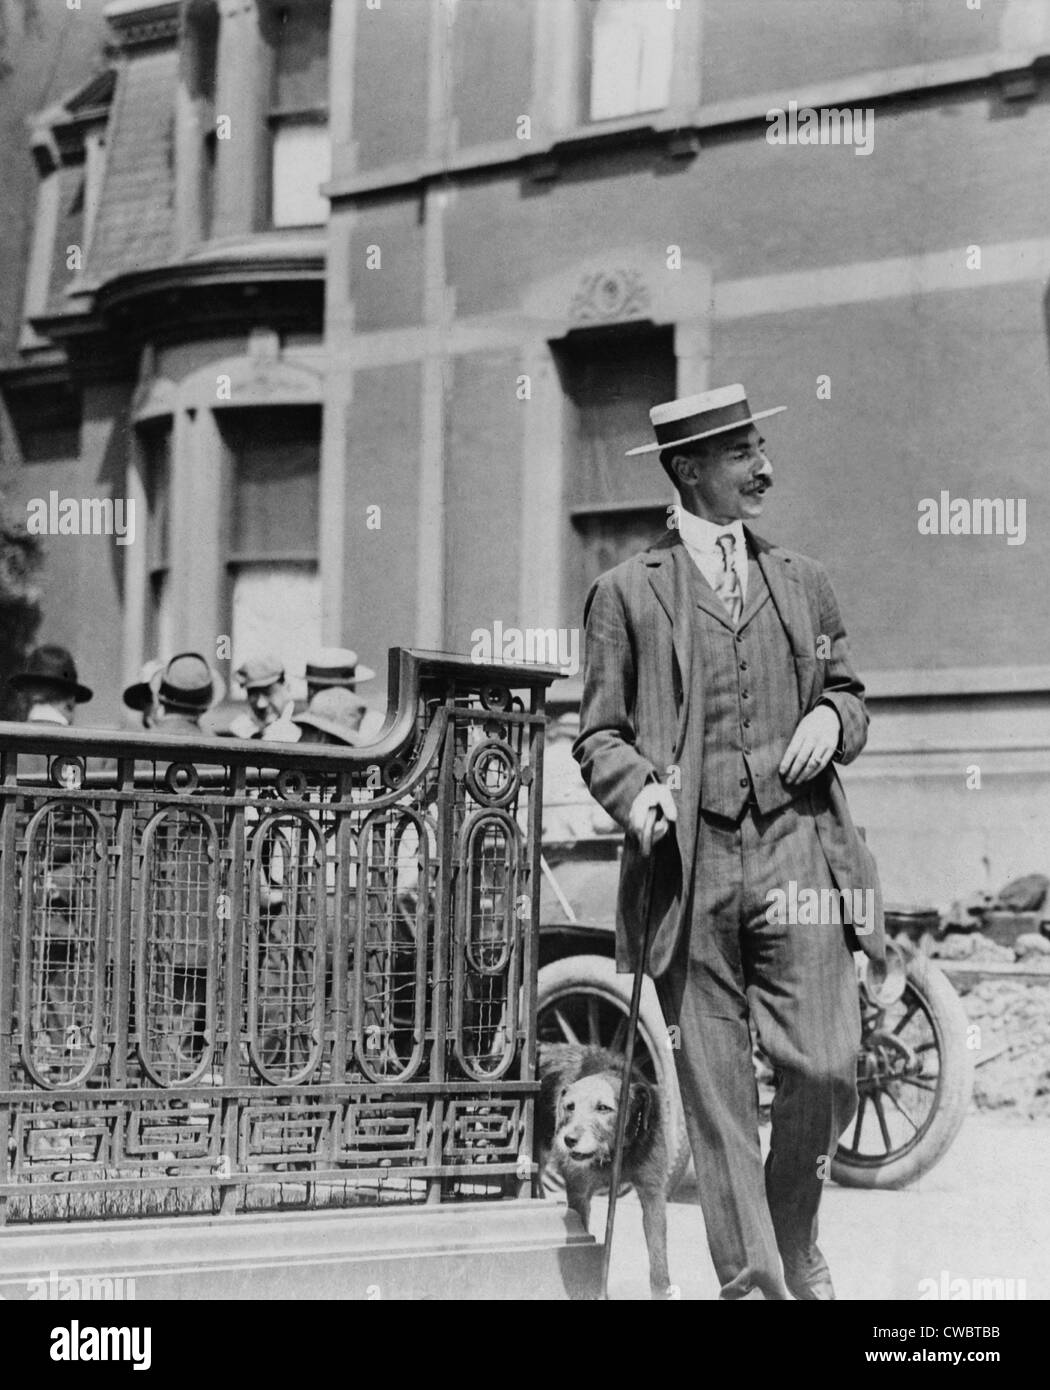 John Jacob Astor IV (1864-1912), promenait son chien. Il était un aristocrate de talent qui font affaire, l'invention, Photo Stock